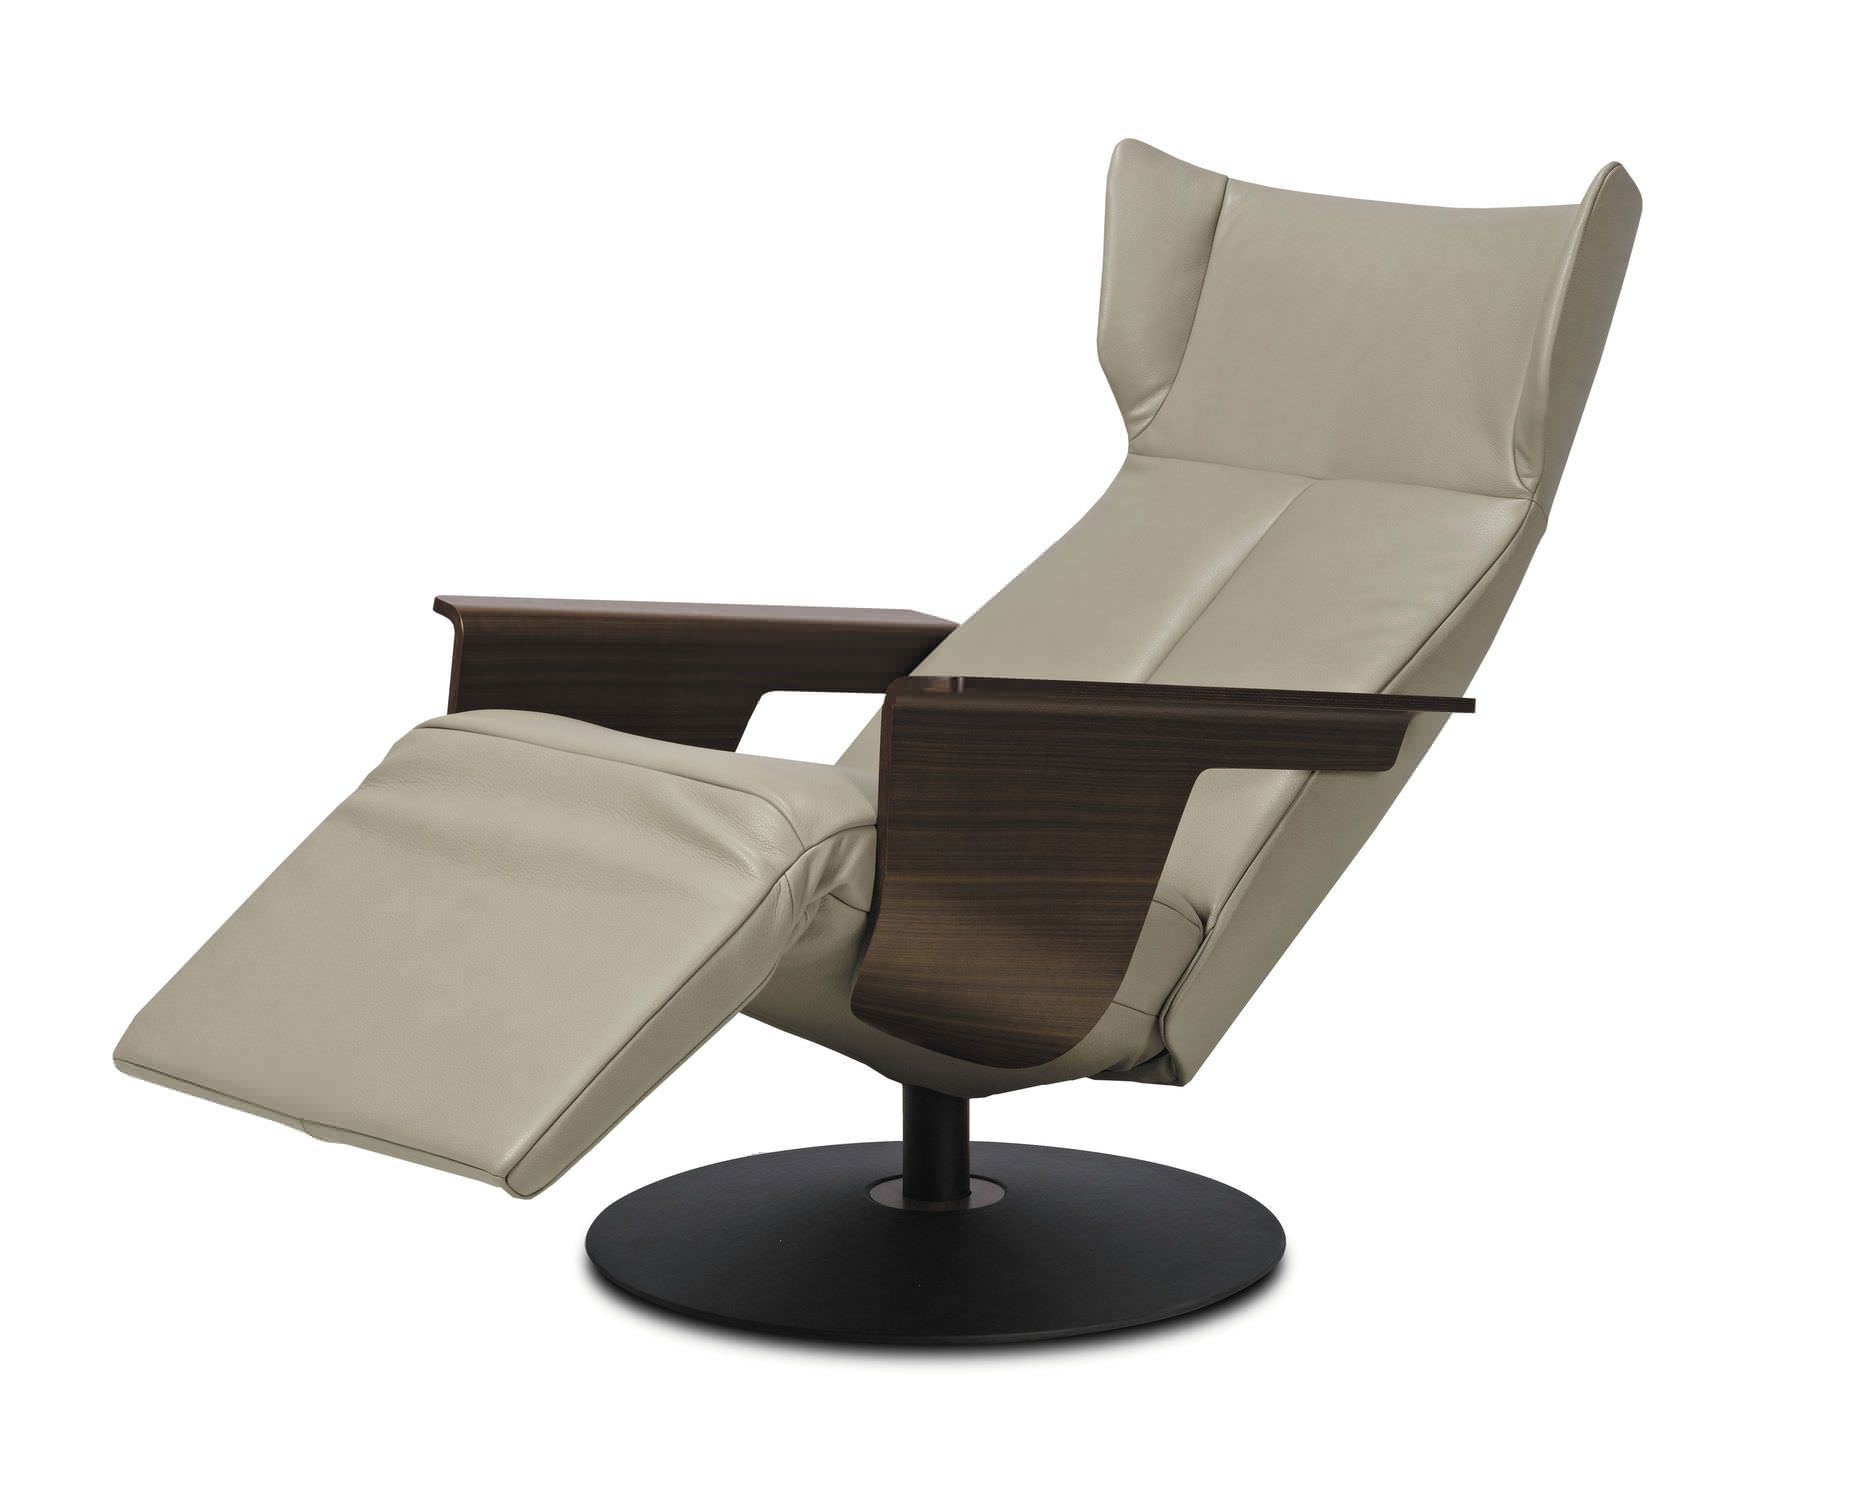 Stressless Stuhl Contemporary Recliner Chairs For Your Furniture Ideas